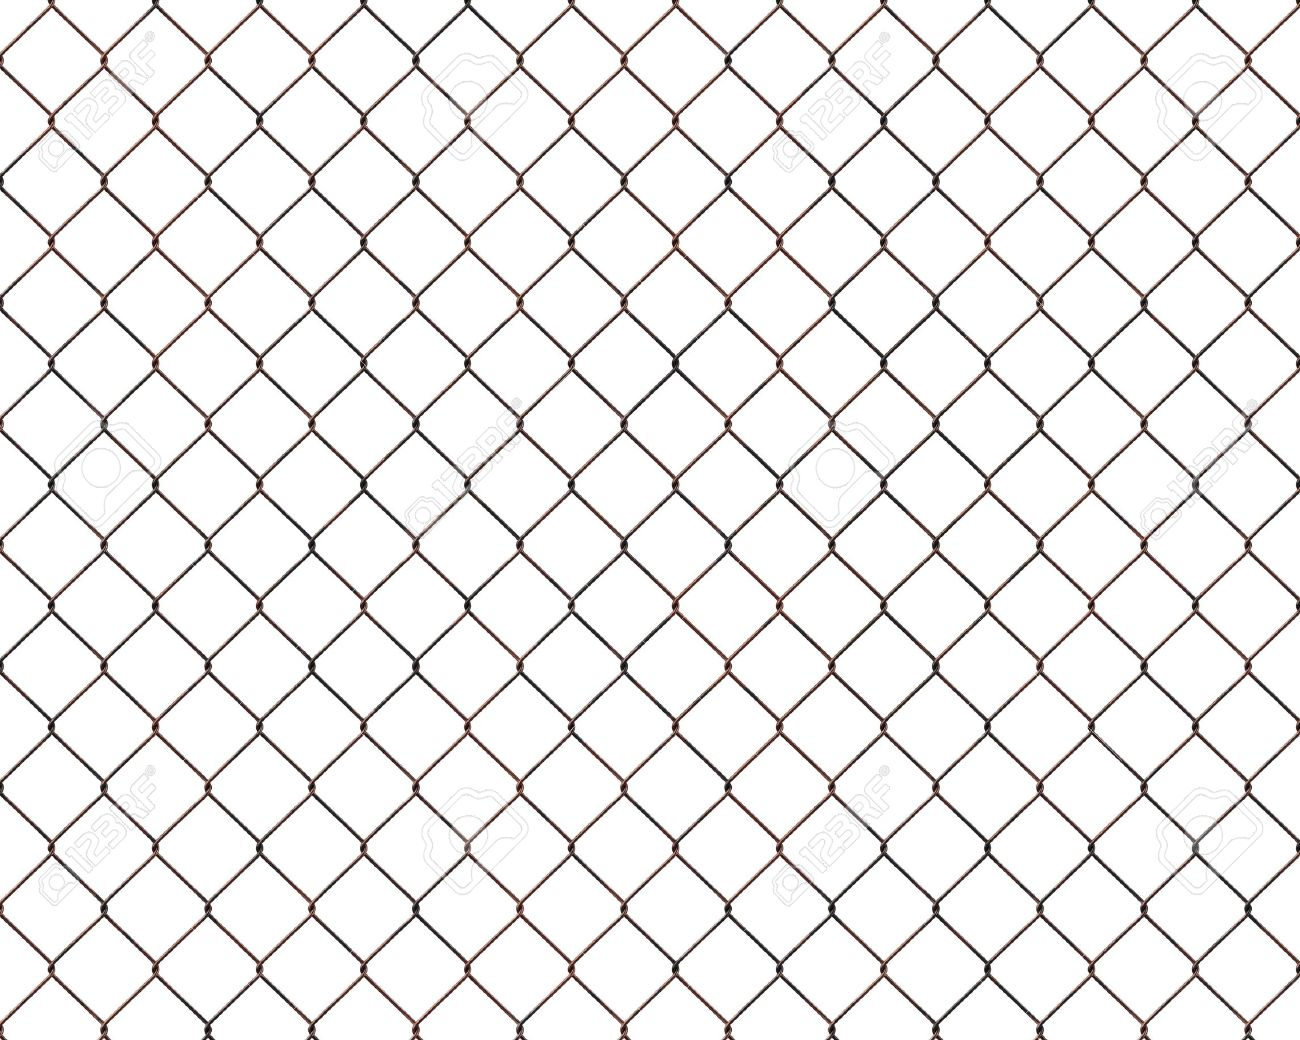 Rusty chainlink fence isolated on white background Stock Photo - 12863496